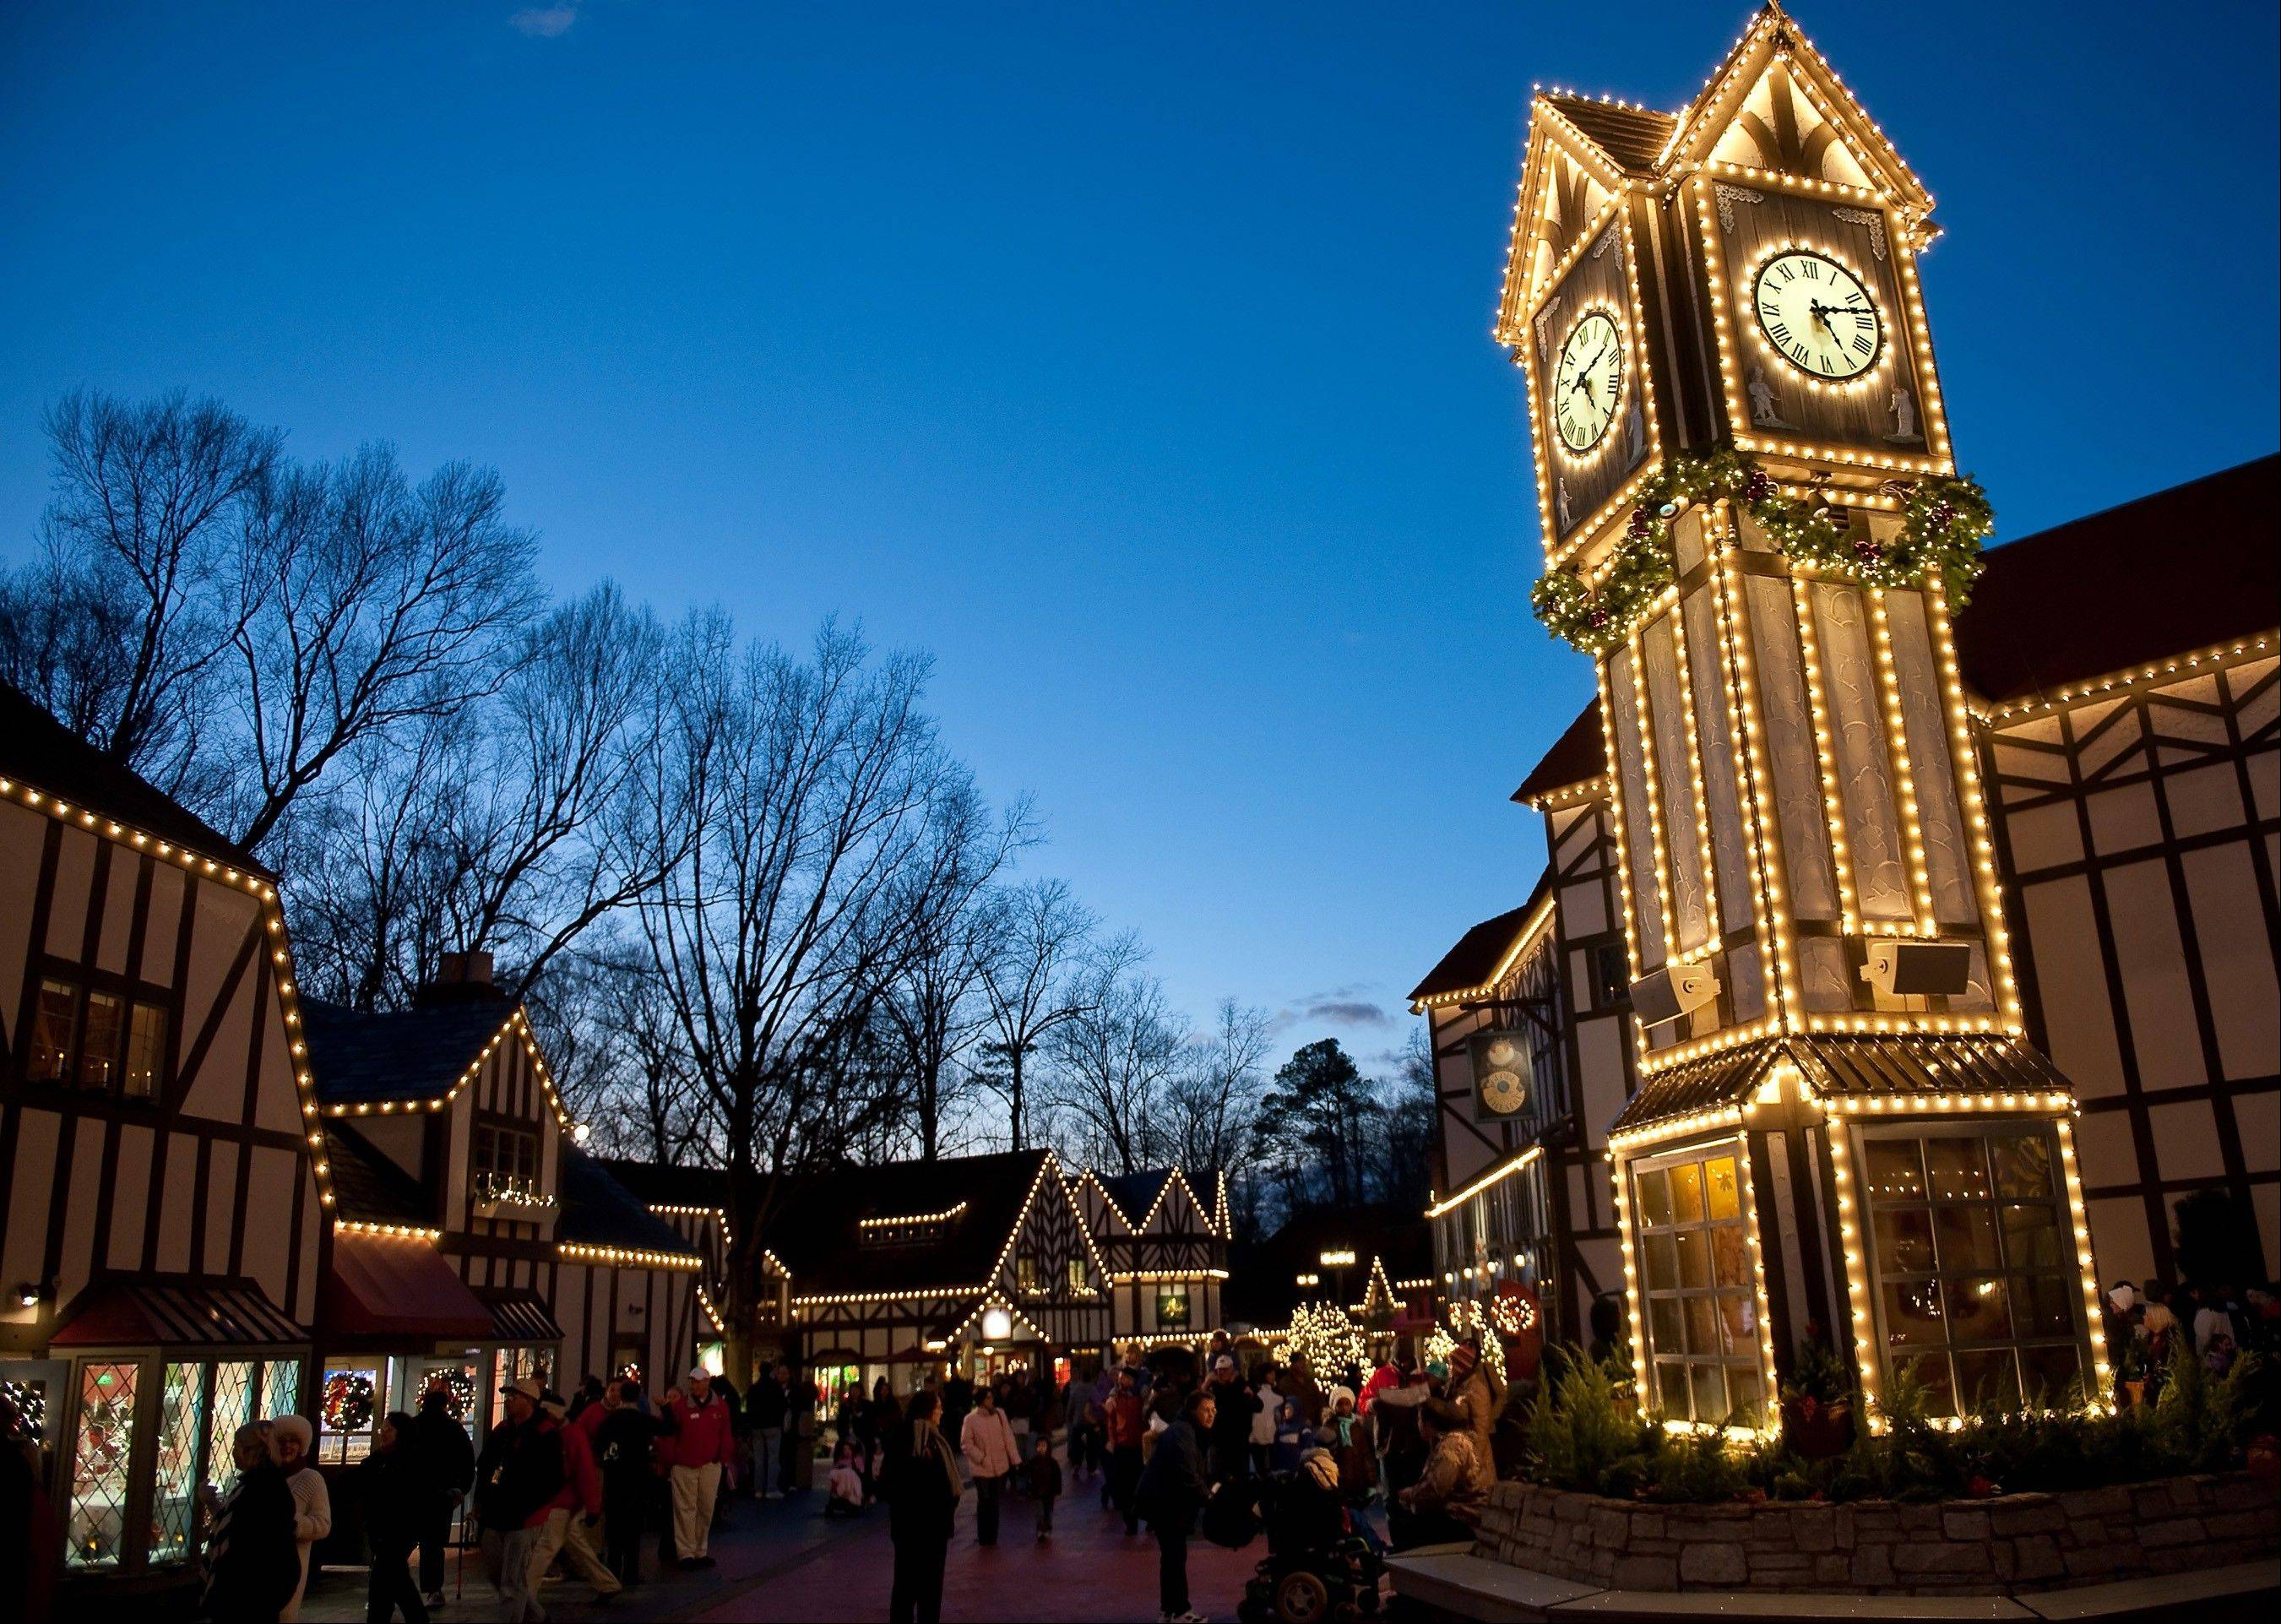 Christmas Town returns for a fourth season at Busch Gardens Willimasburg with 6 million lights adorning nearly every building. The display includes 1,500 trees, 700 wreaths and 20,000 ornaments.